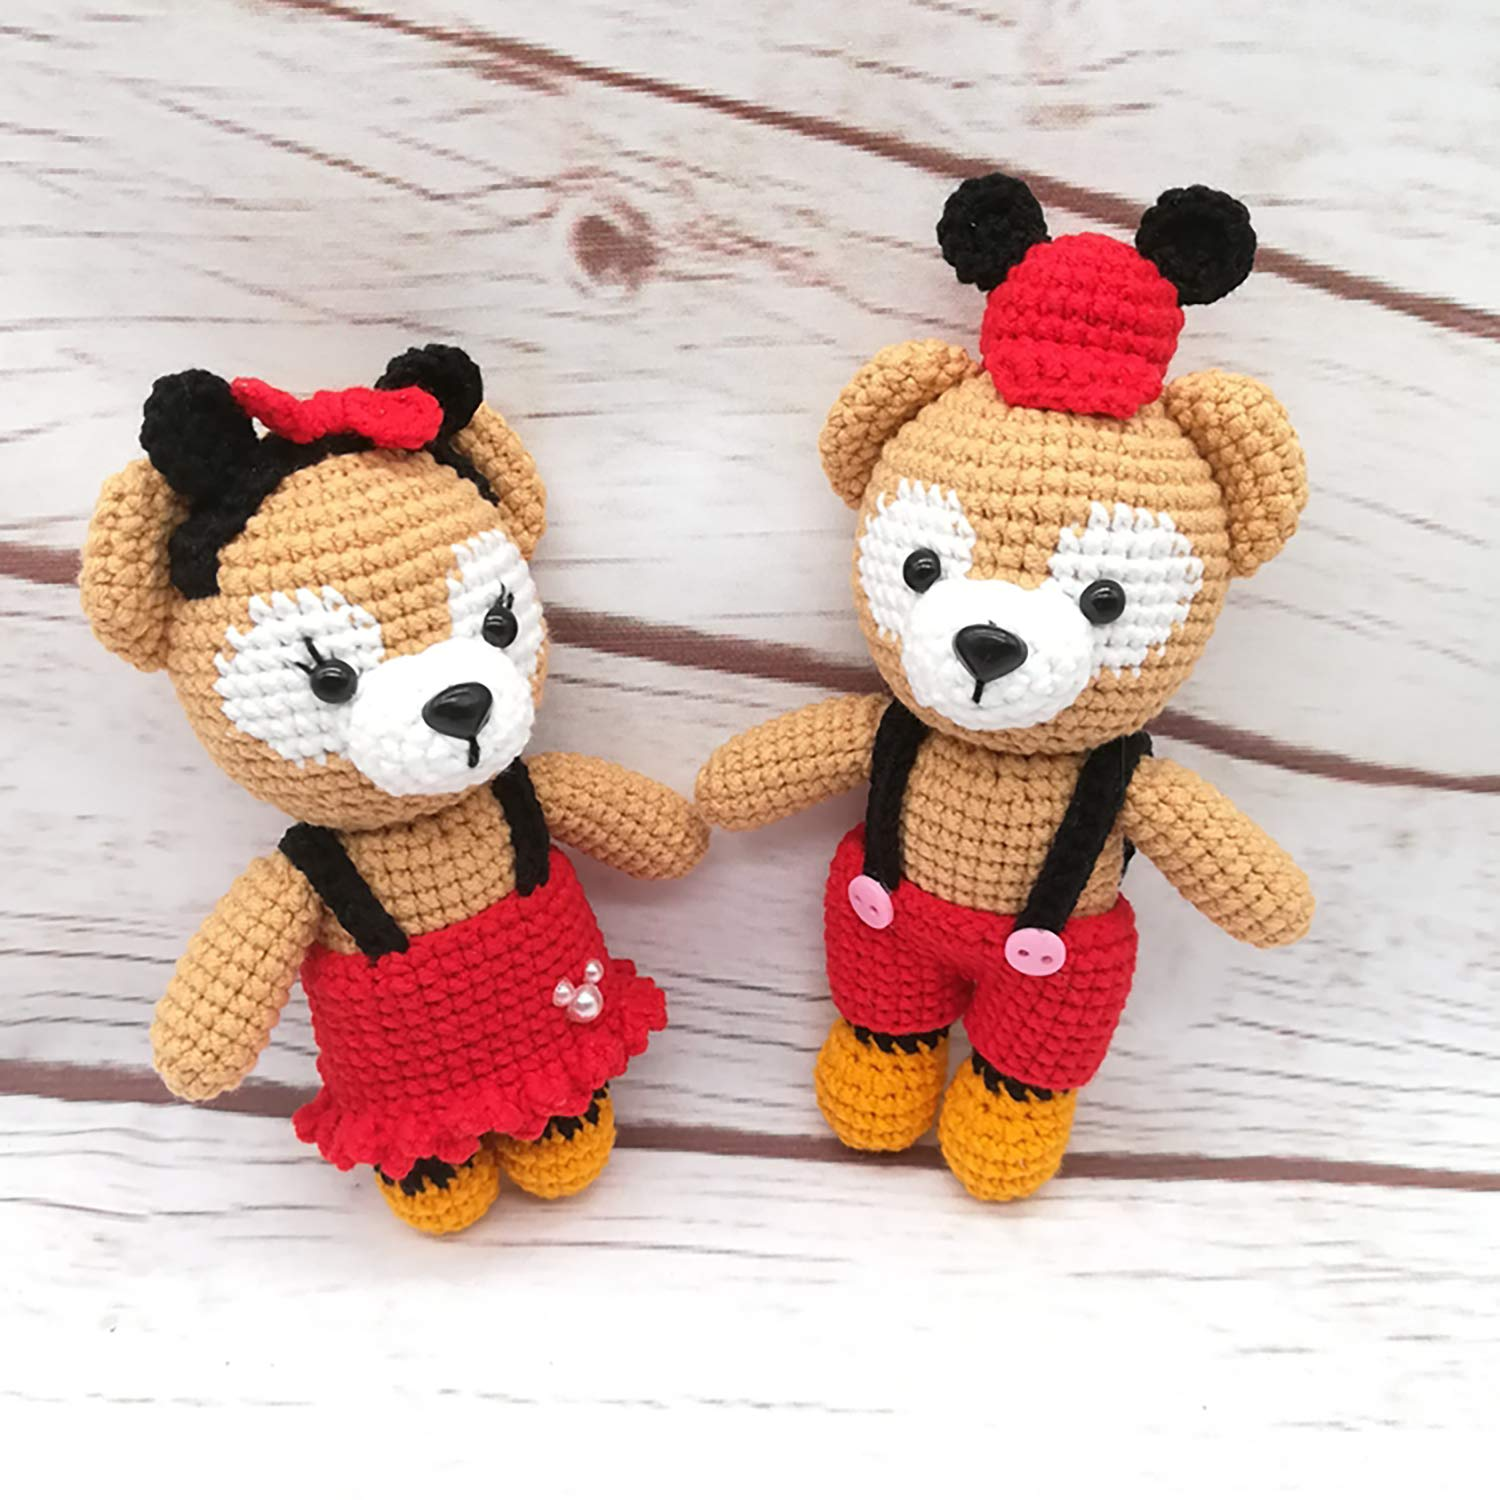 Amigurumi Treasures: 15 Crochet Projects To Cherish: Lee, Erinna ... | 1500x1500